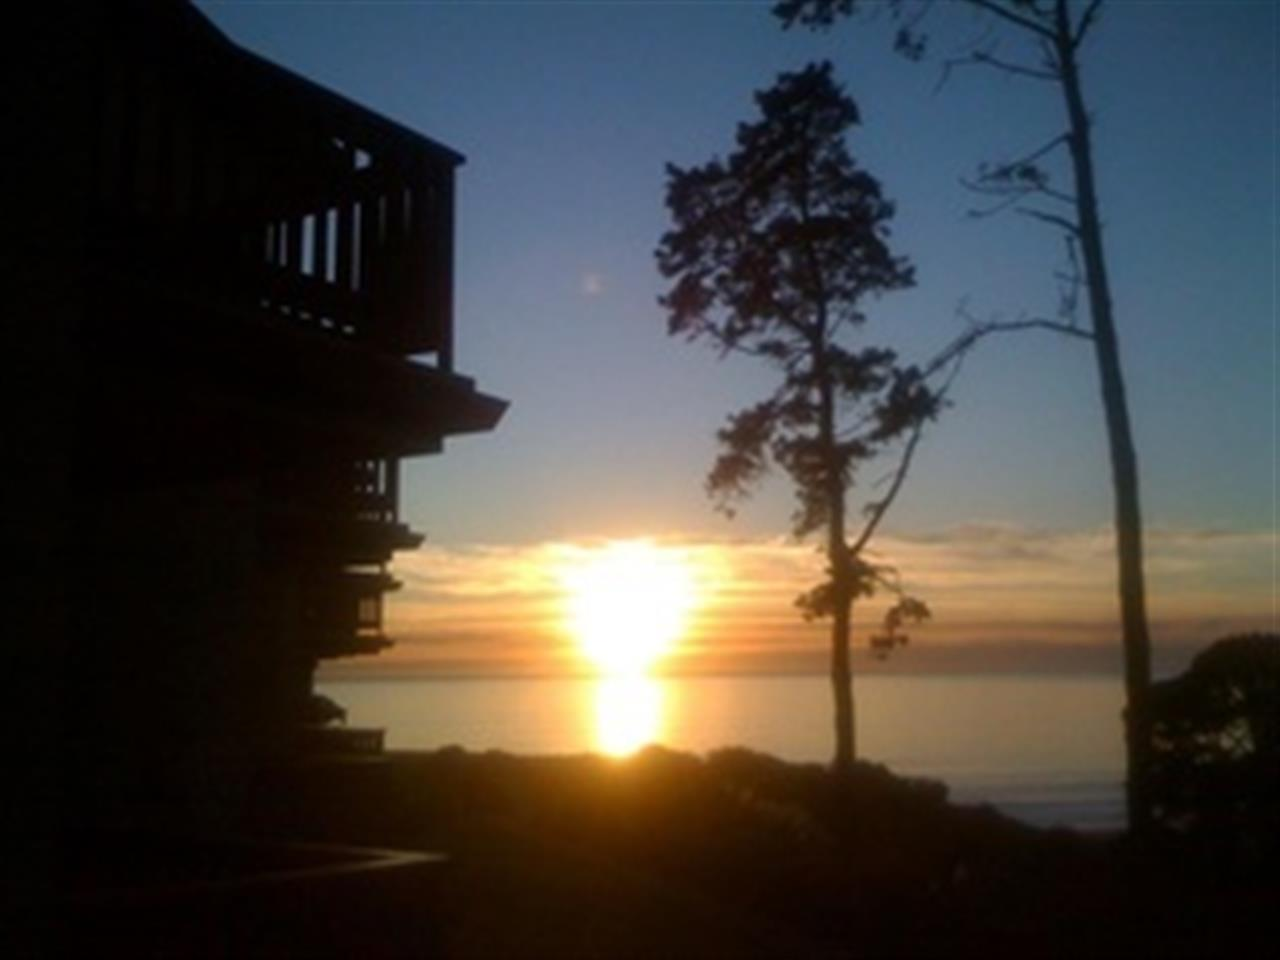 Sunset at Seascape Resort Aptos North Bluff